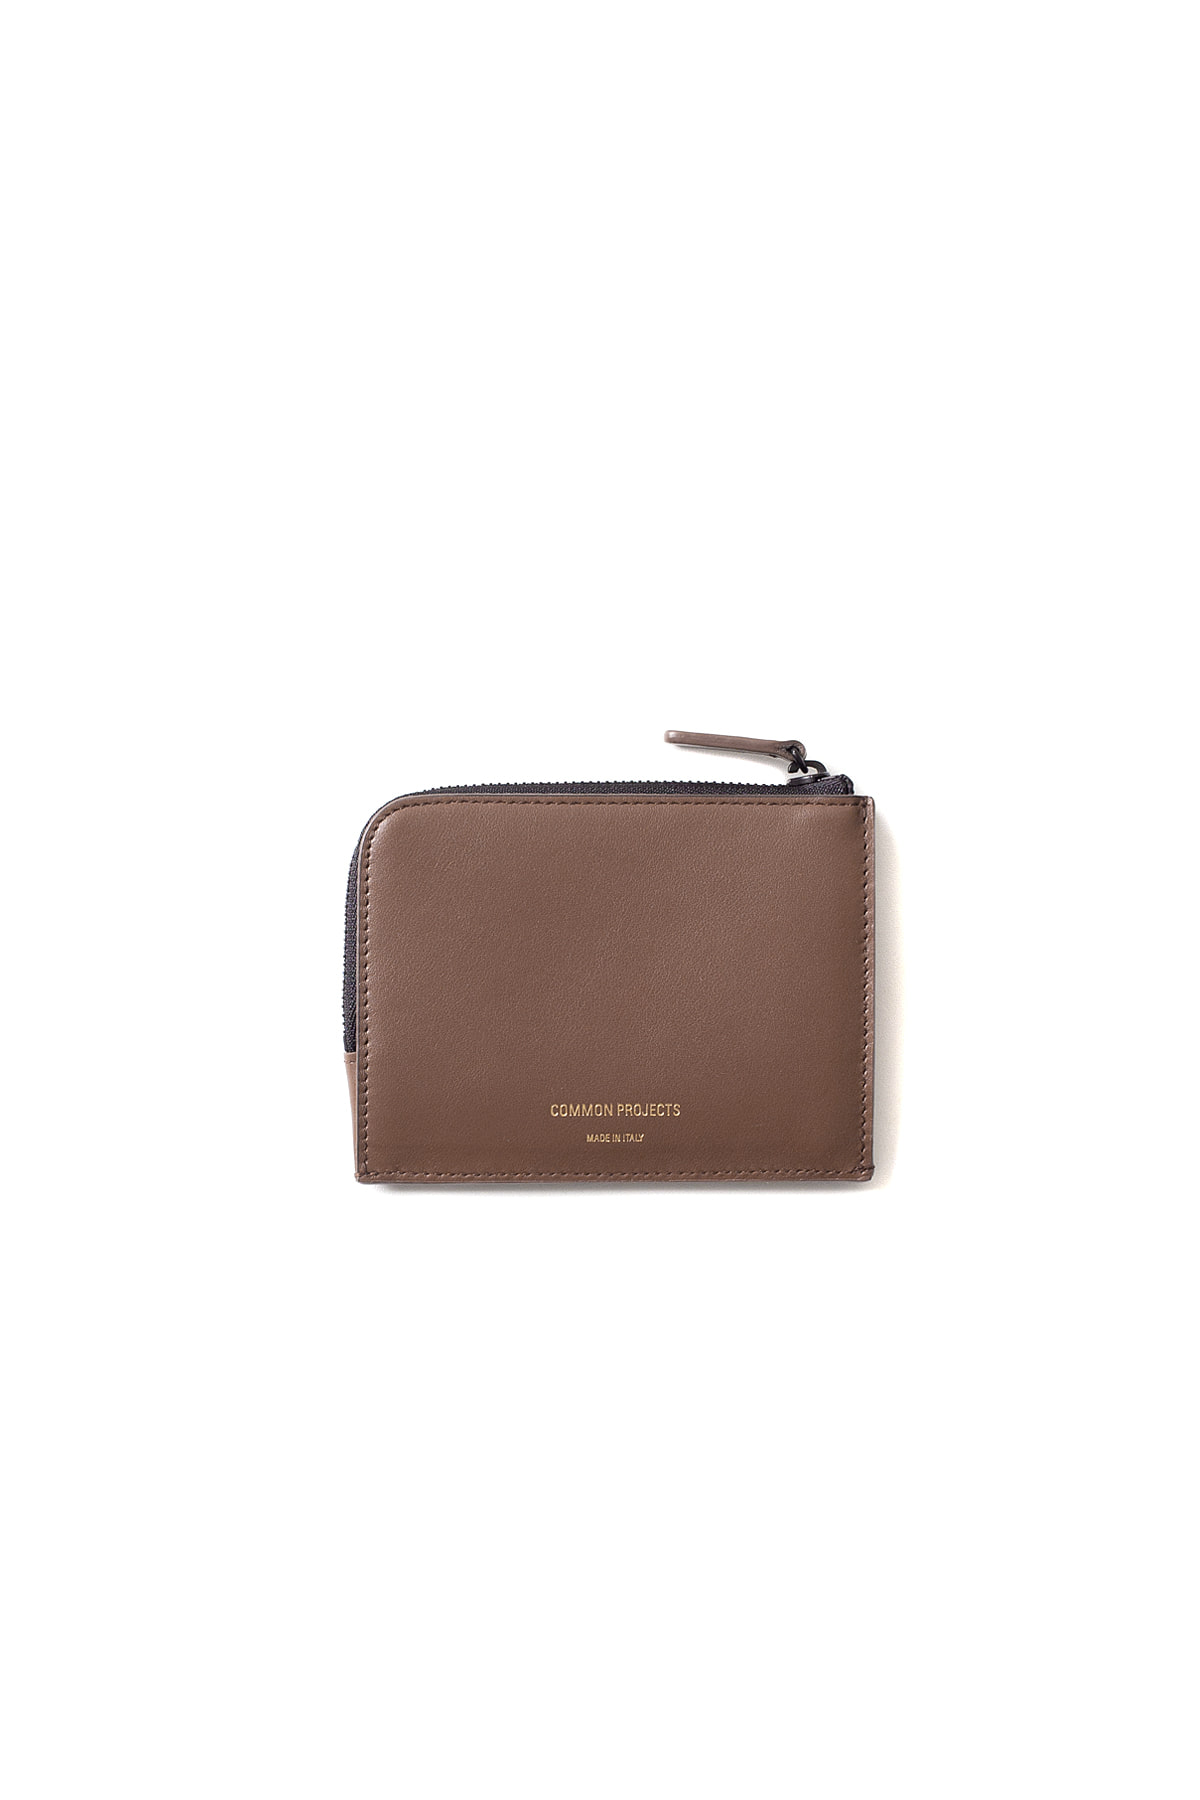 Common Projects : Zipper Wallet (Brown)